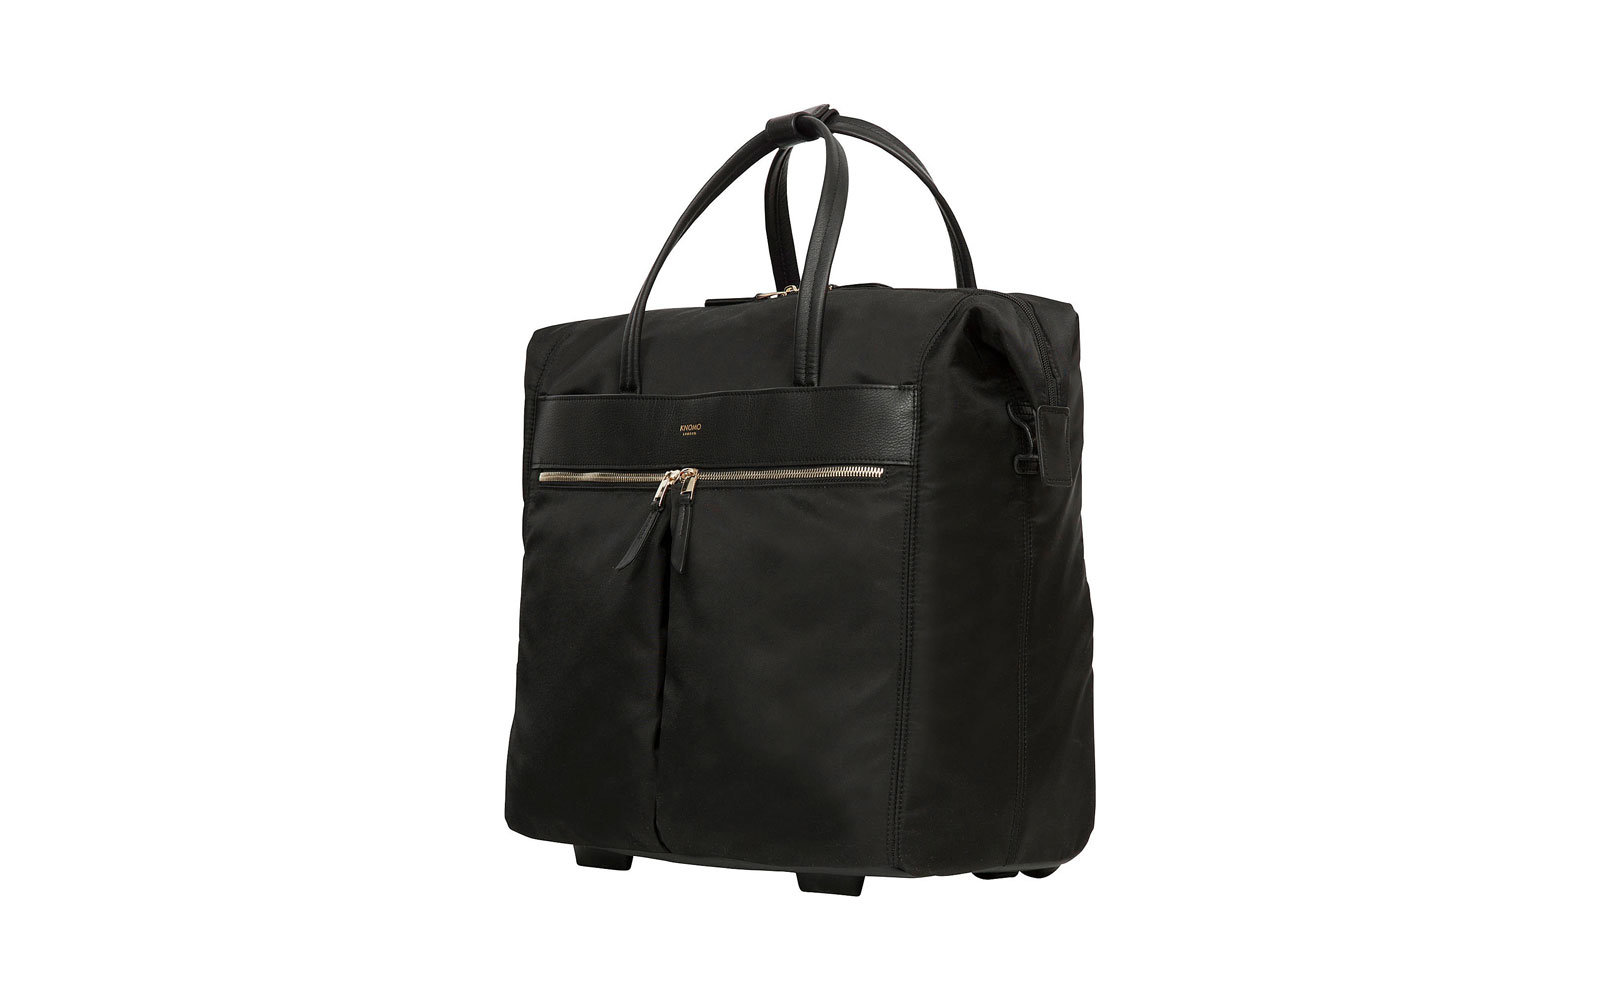 KNOMO London Mayfair Nylon Sedley Tote